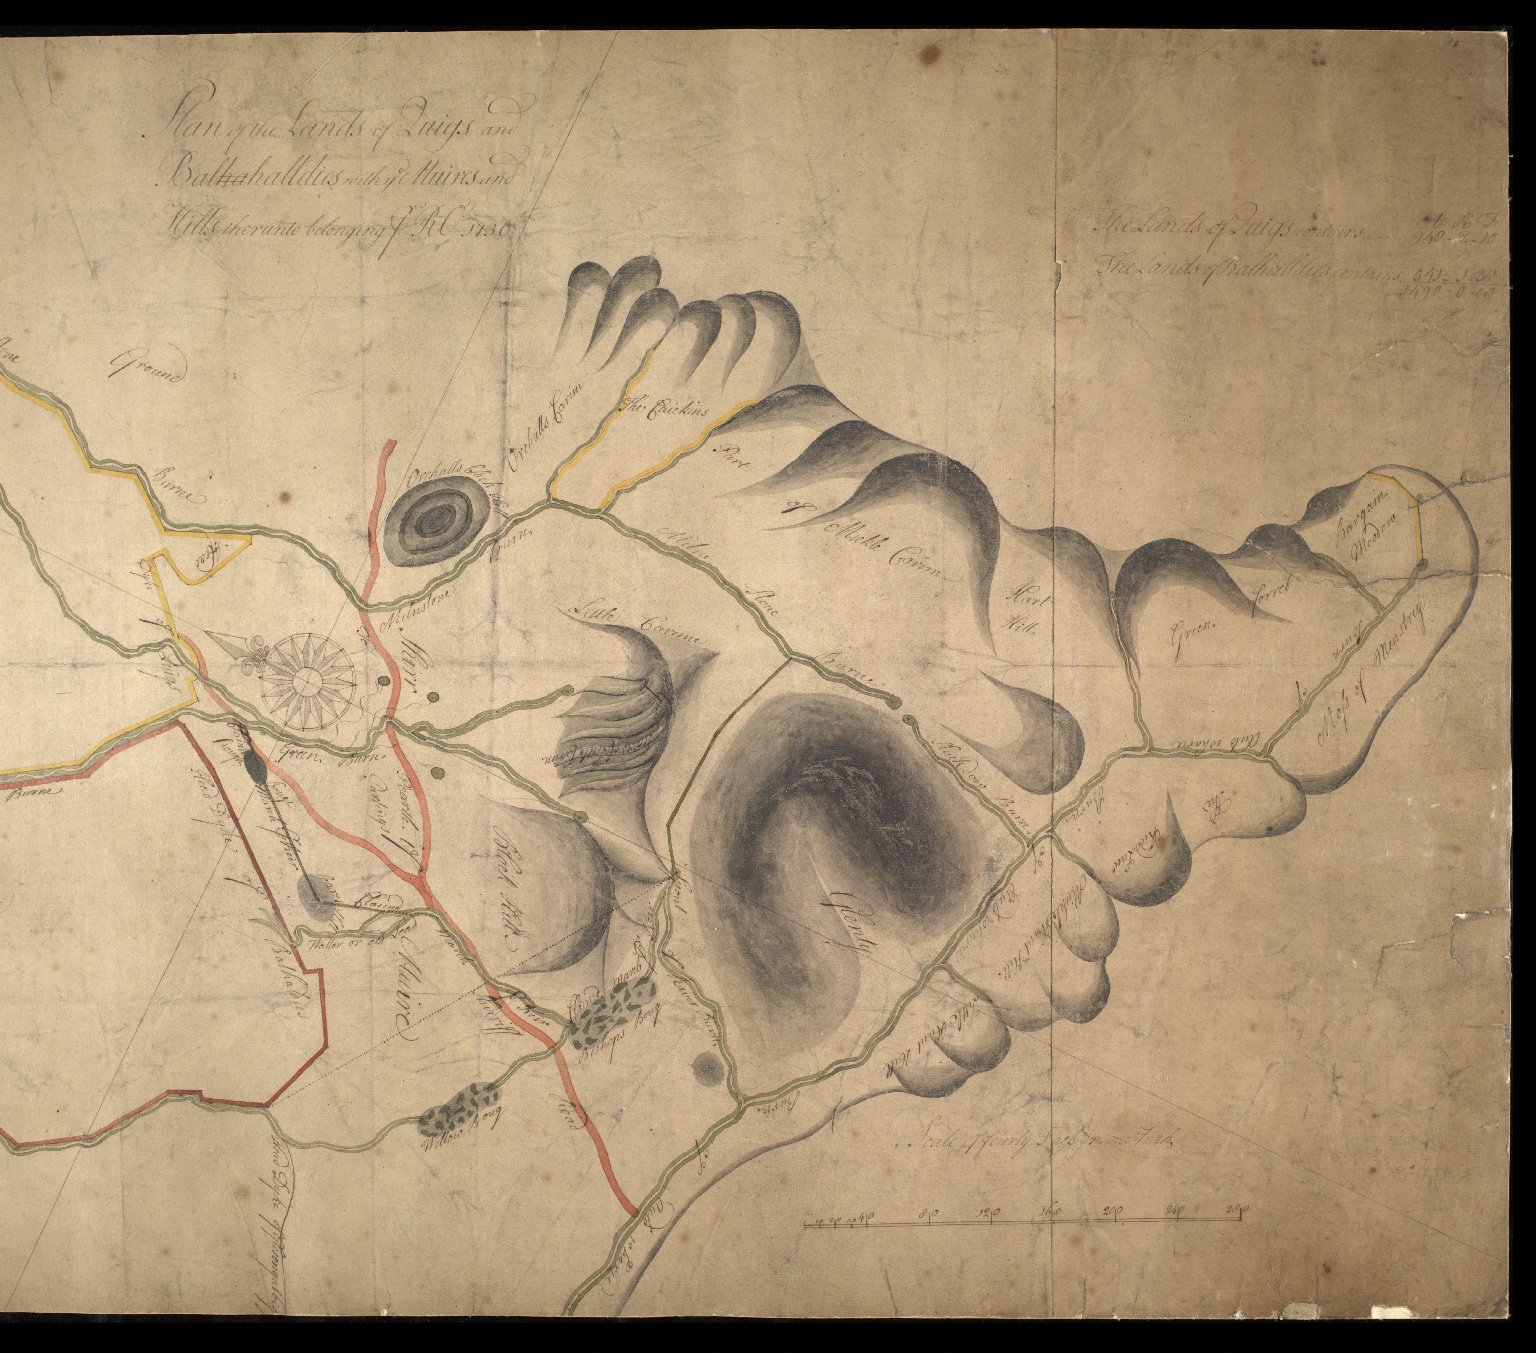 Plan of the Lands of Quigs [i.e. Quoigs] and Balhalldies [i.e. Balhaldie] with ye Muirs and Hills thereunto belonging to RO, 1736. [2 of 2]